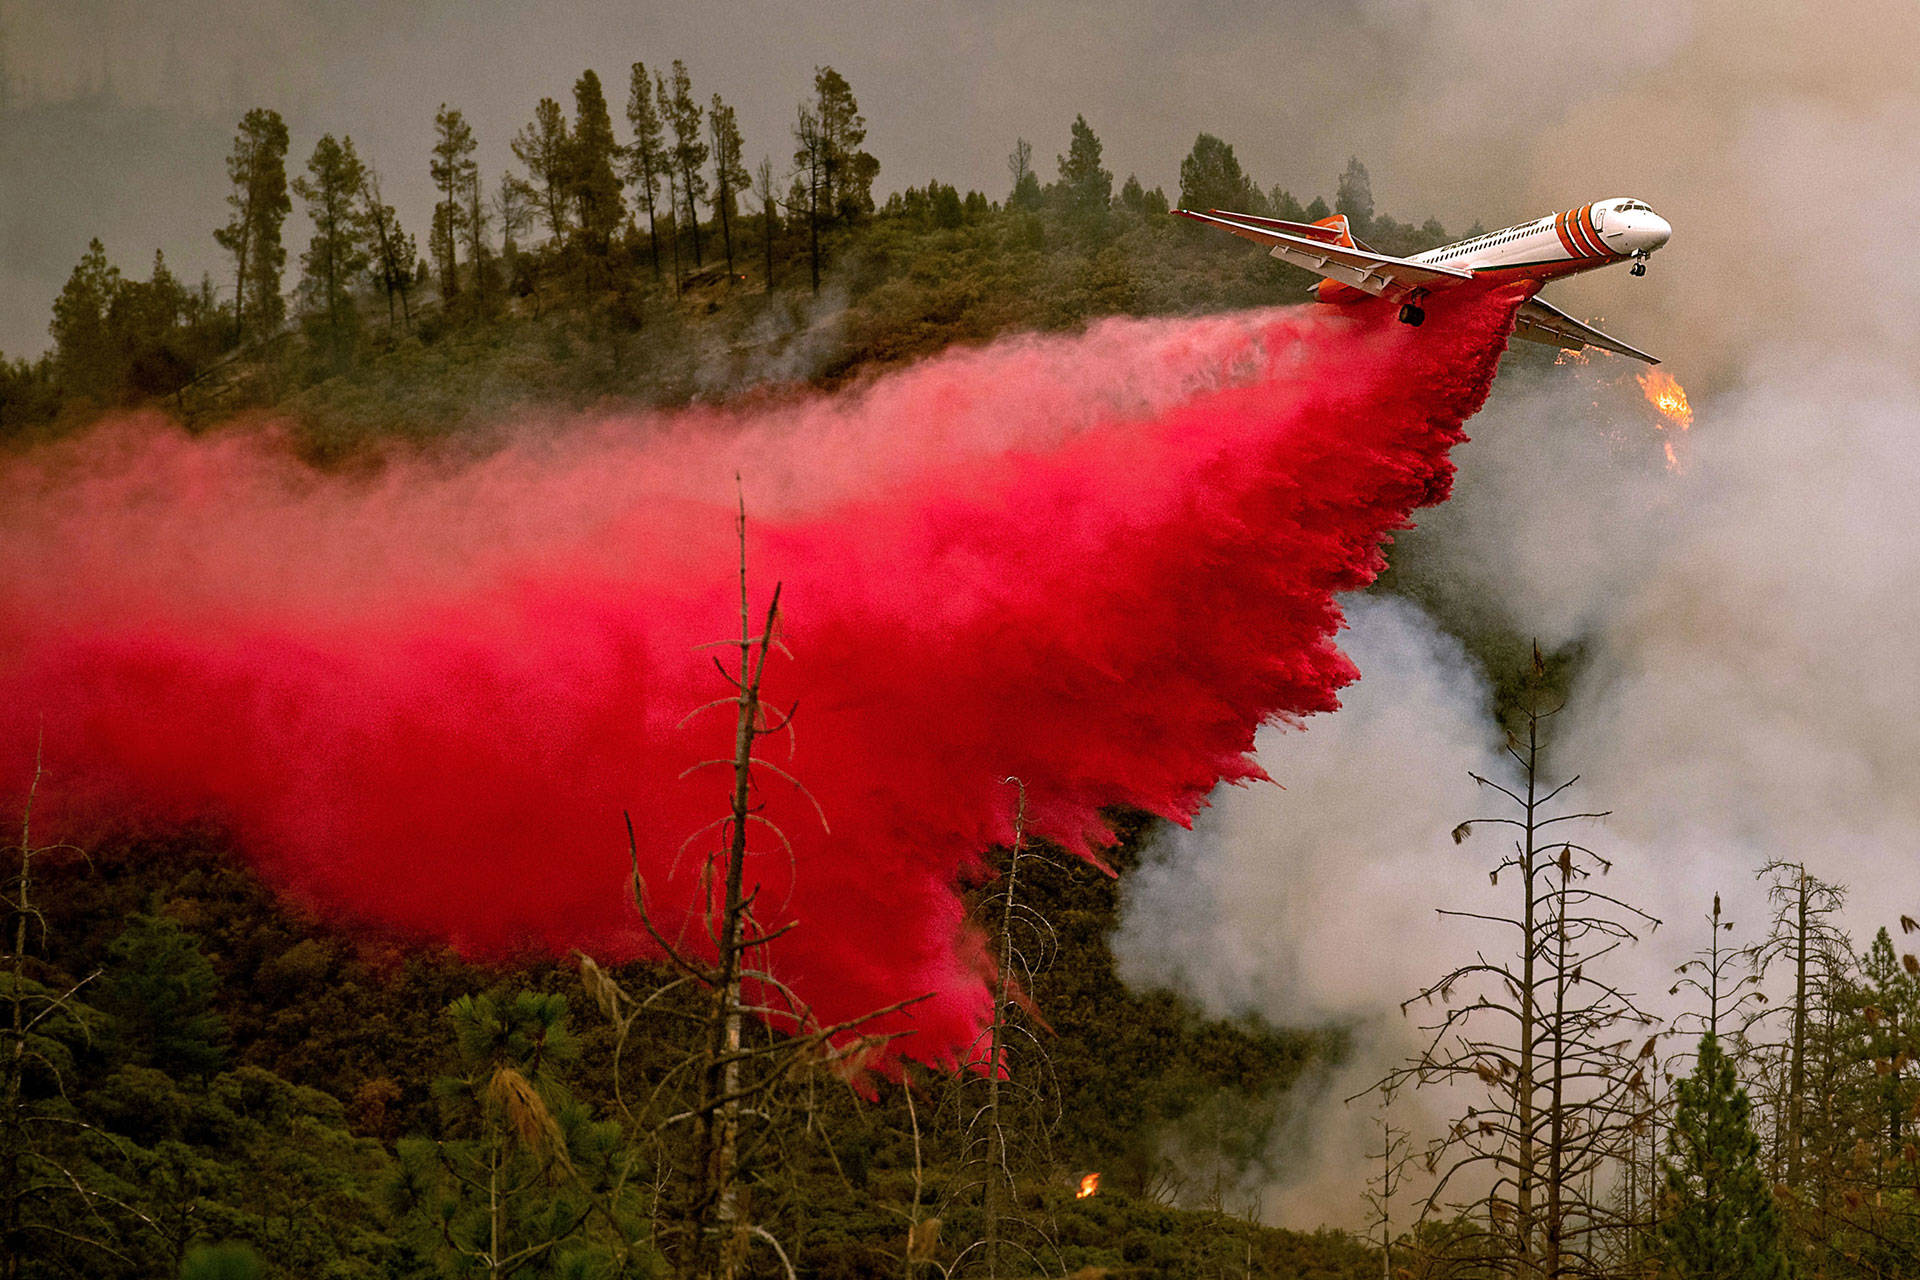 An air tanker drops retardant while battling the Ferguson Fire near Yosemite National Park on July 21. The fire is now burning within the park boundary. NOAH BERGER/AFP/Getty Images